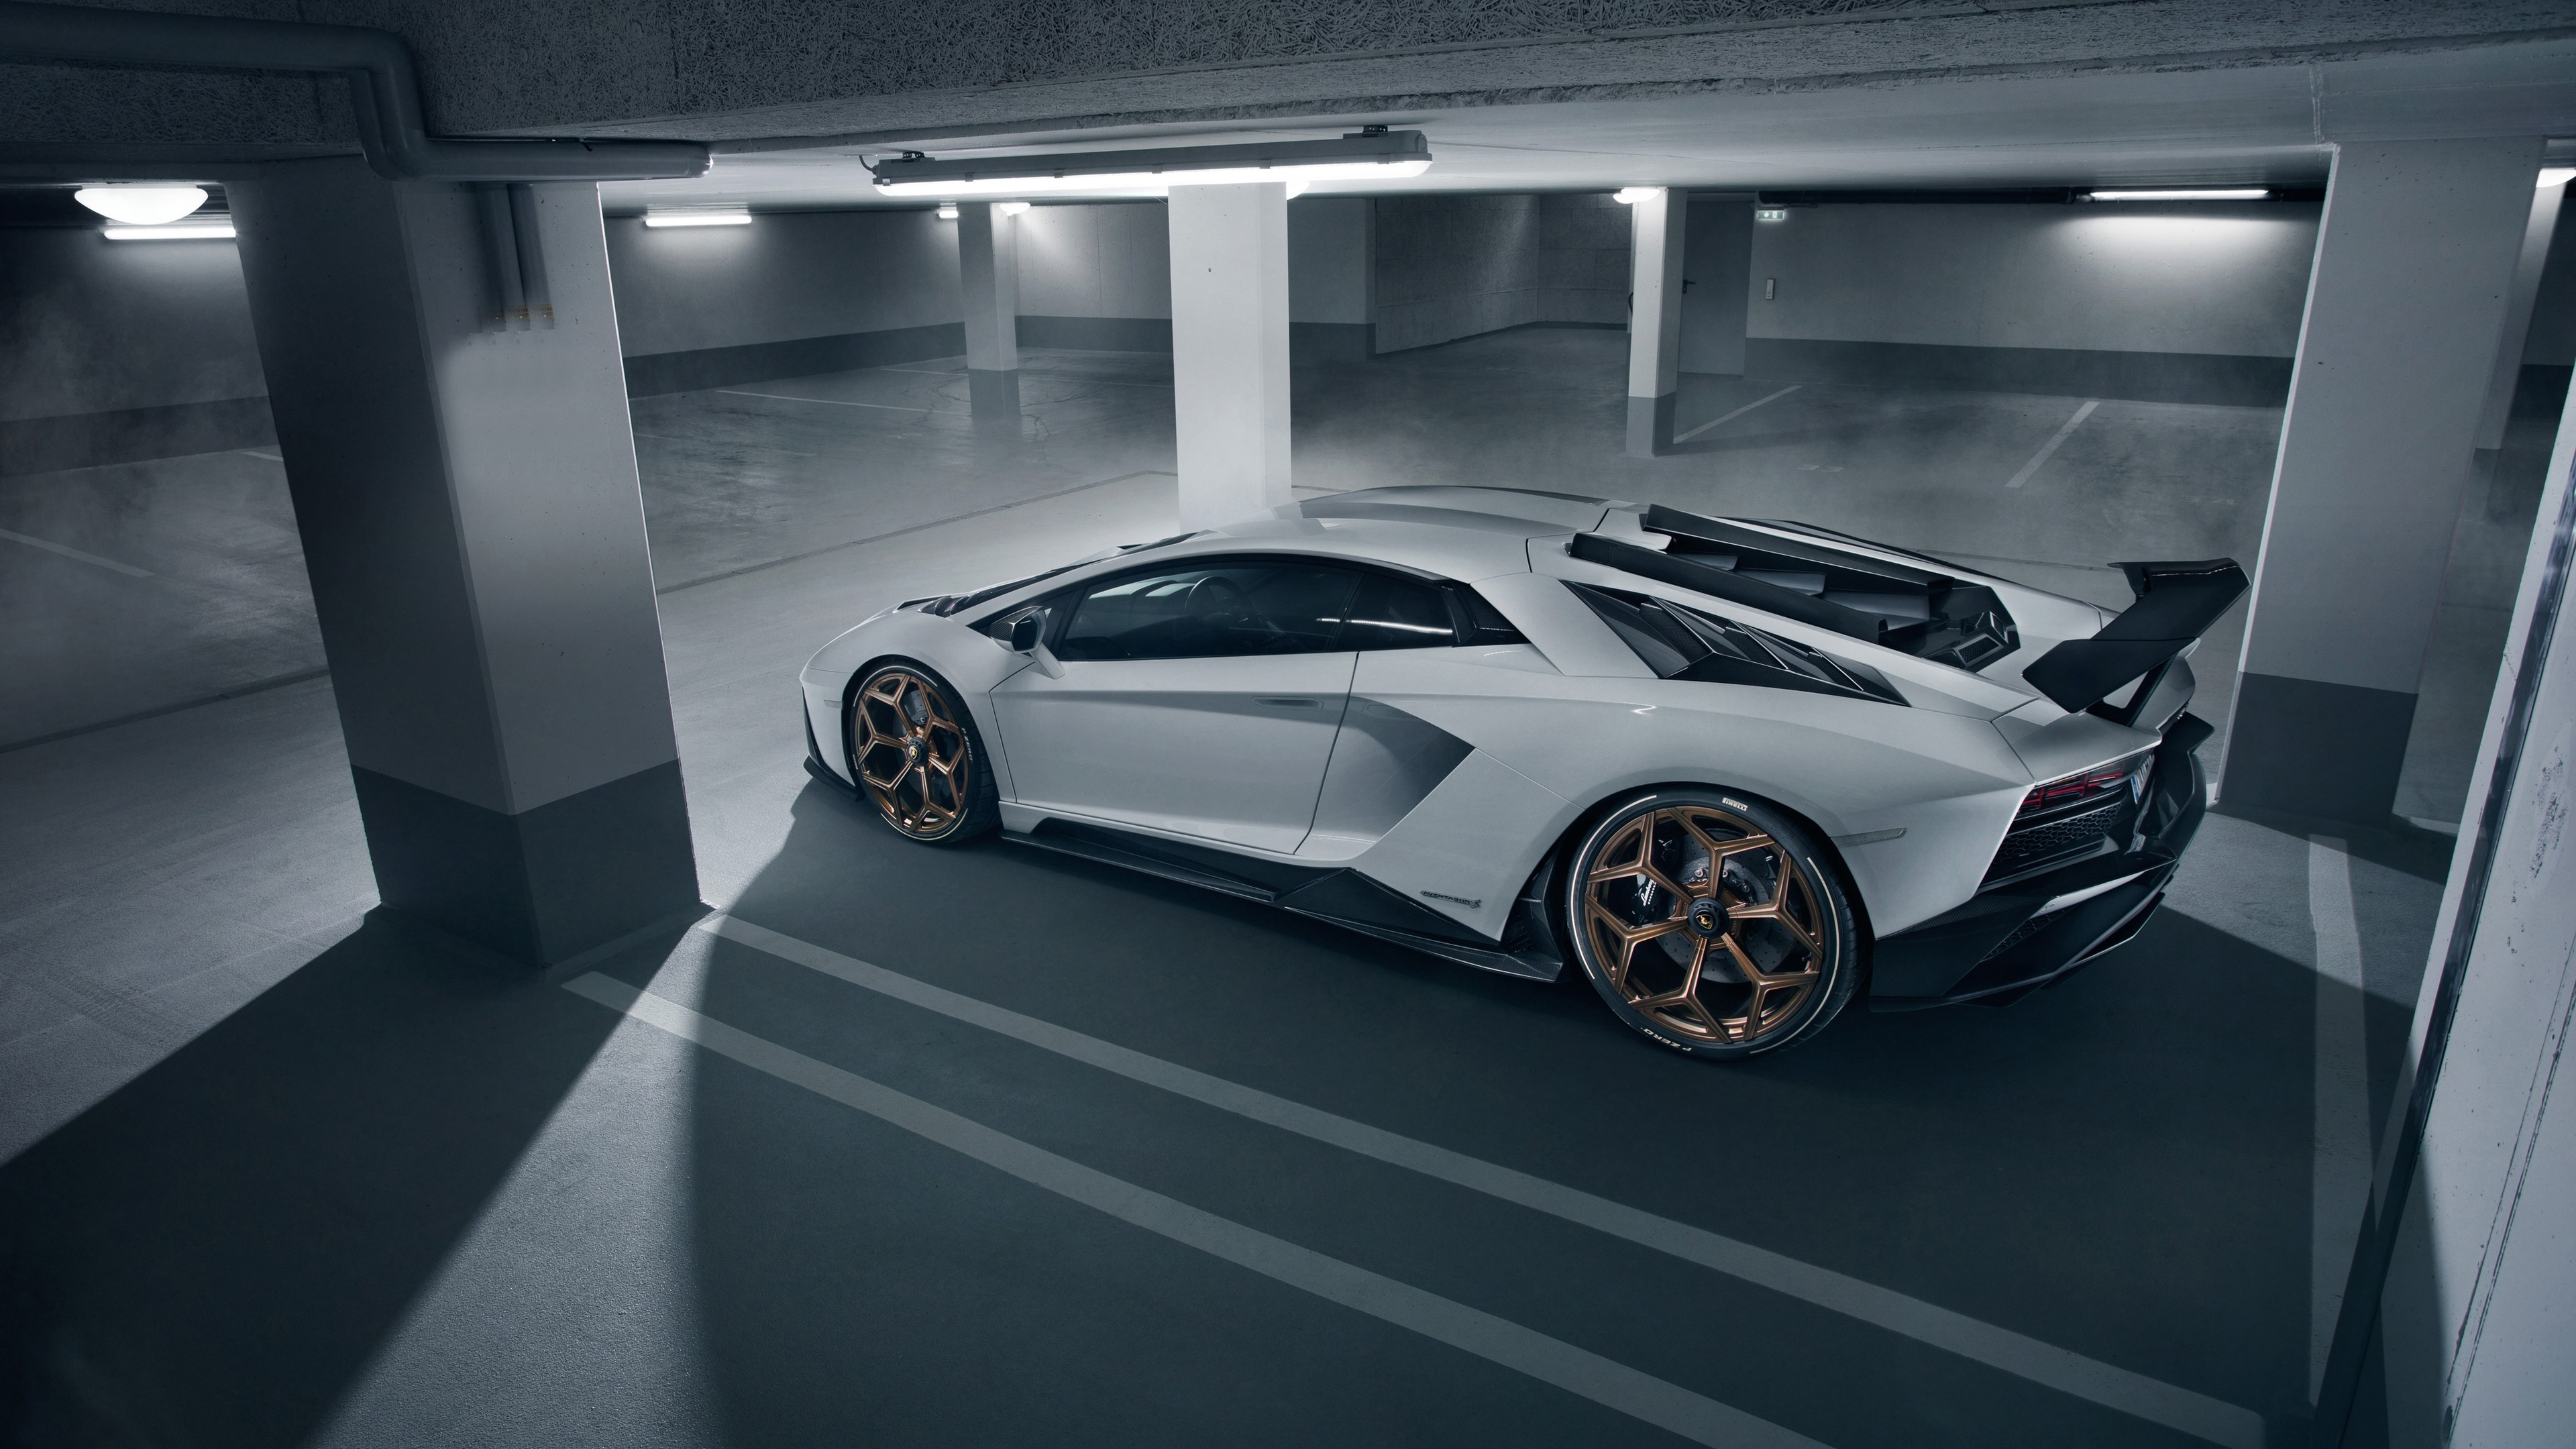 2018 novitec torado aventador s 4k 1539113663 - 2018 Novitec Torado Aventador S 4k - novitec wallpapers, lamborghini wallpapers, lamborghini aventador wallpapers, hd-wallpapers, cars wallpapers, 4k-wallpapers, 2018 cars wallpapers